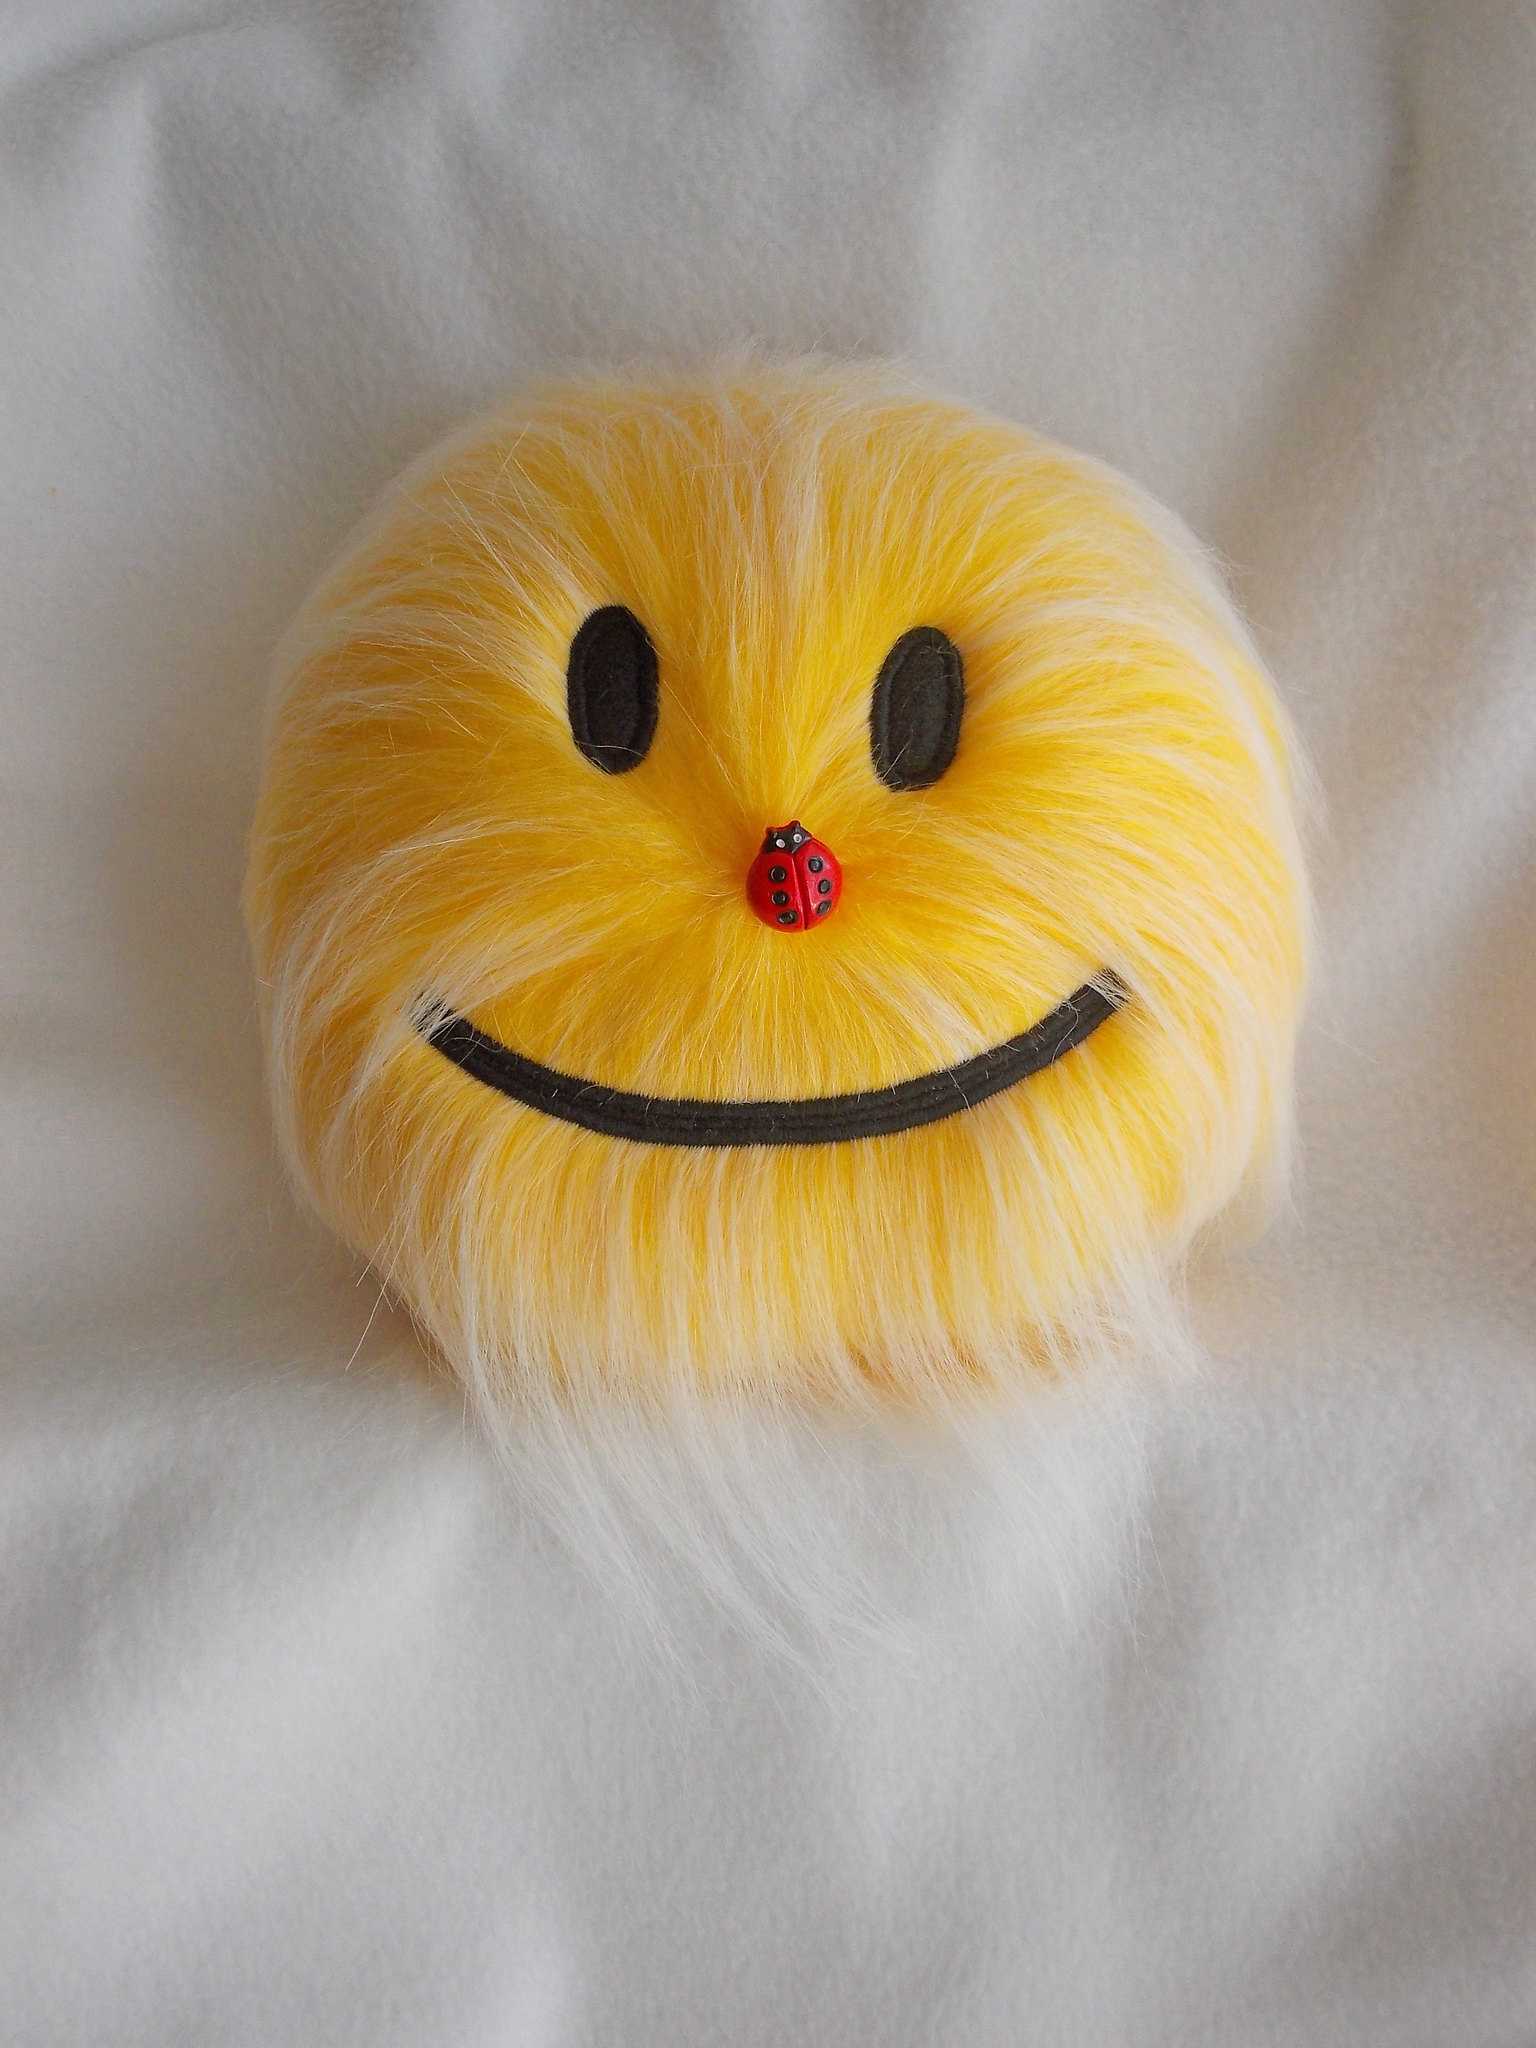 furry yellow plush smiley face stuffed toys_100